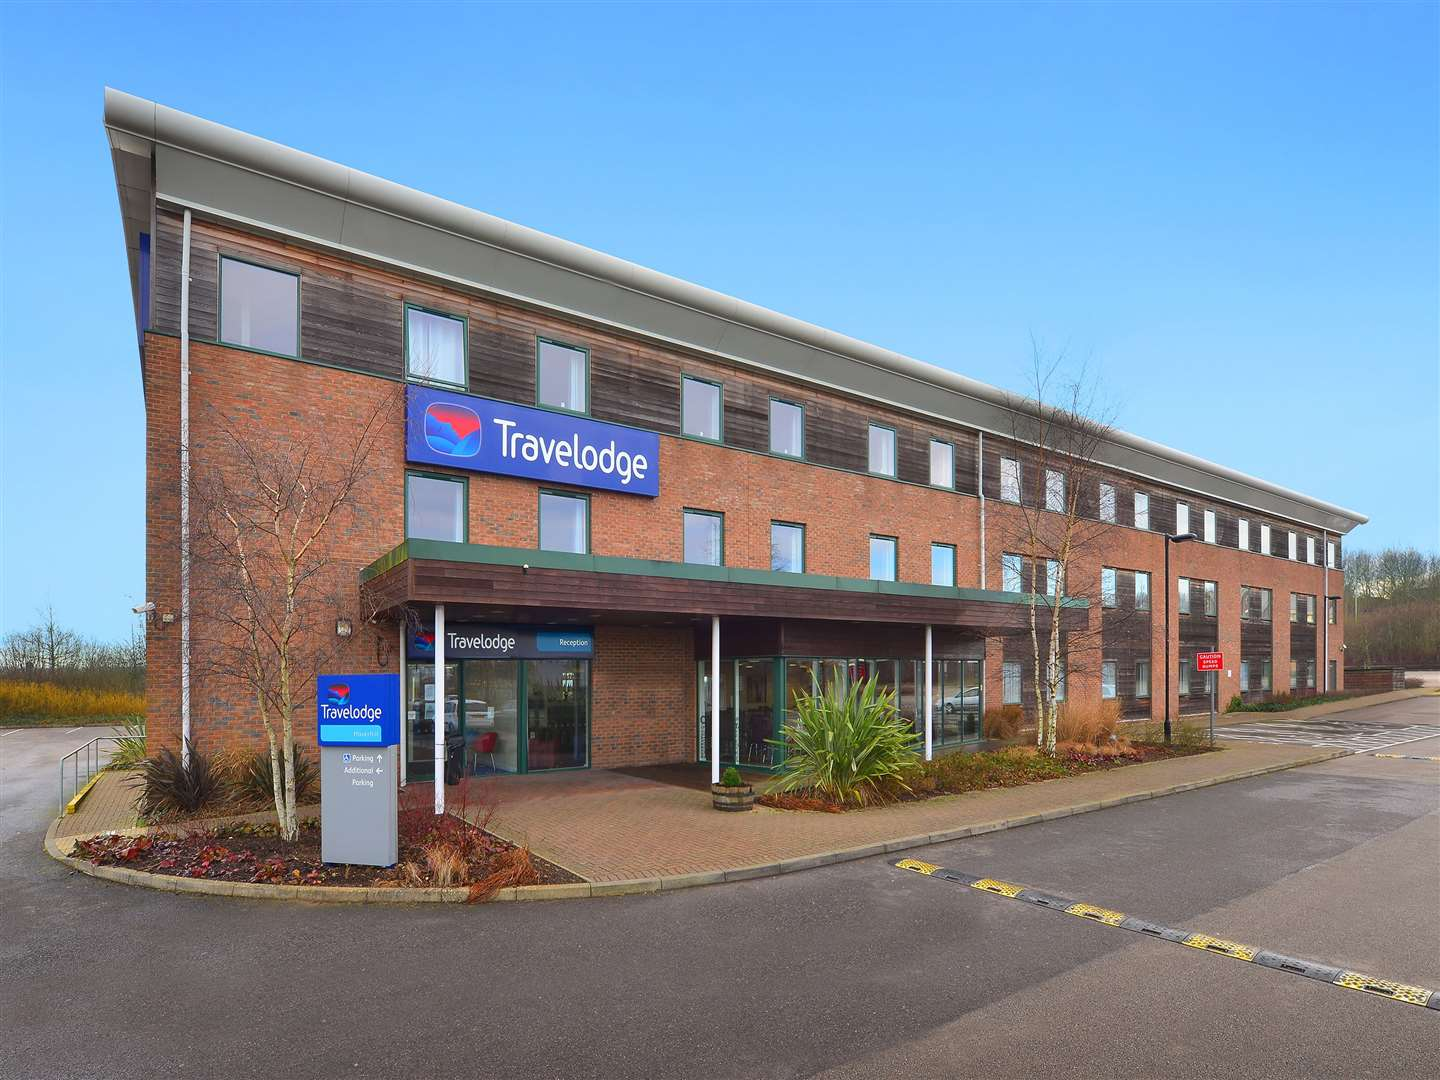 Travelodge in Phoenix Road, Haverhill, which is now open again for guests after a 16 week closure